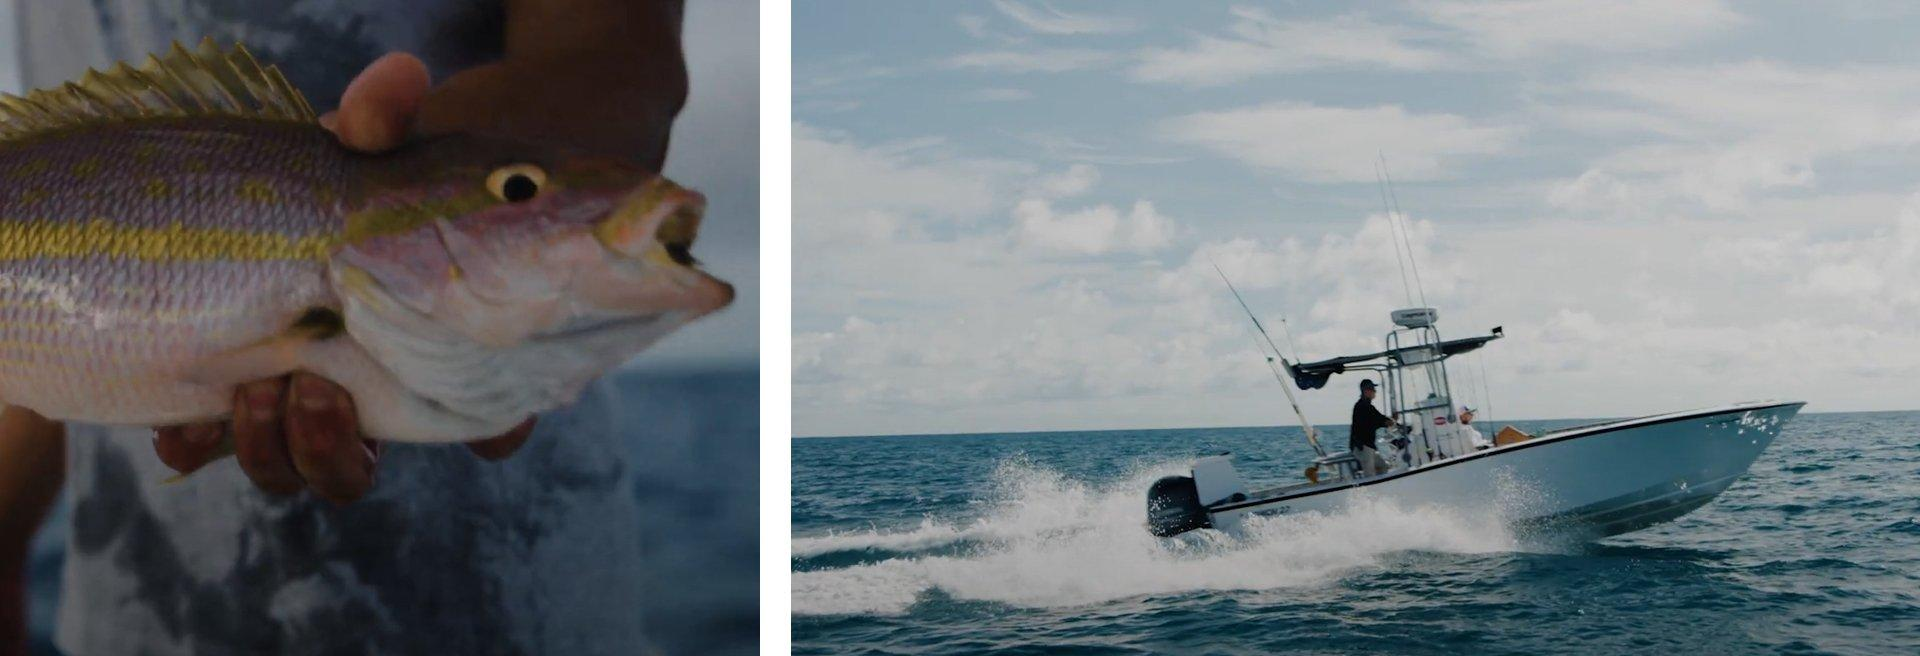 Left: Close-up of fish; Right: angler maneuvering speedboat in the water